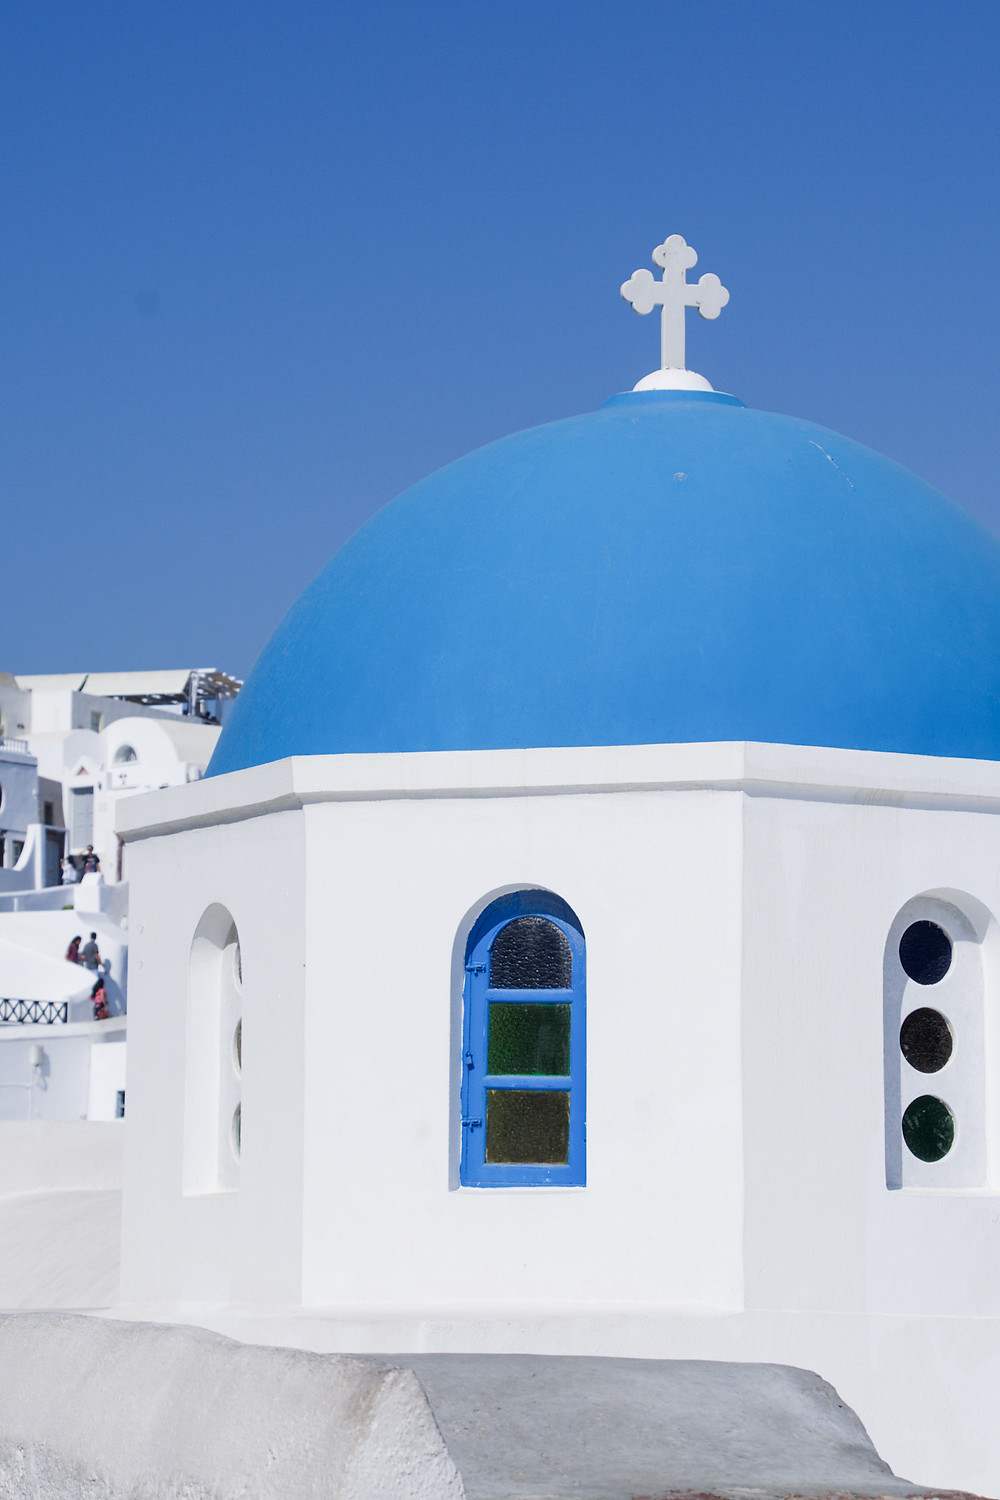 A whitewashed church building with a blue-domed roof and a white cross at the top in Oia, Santorini, Greece